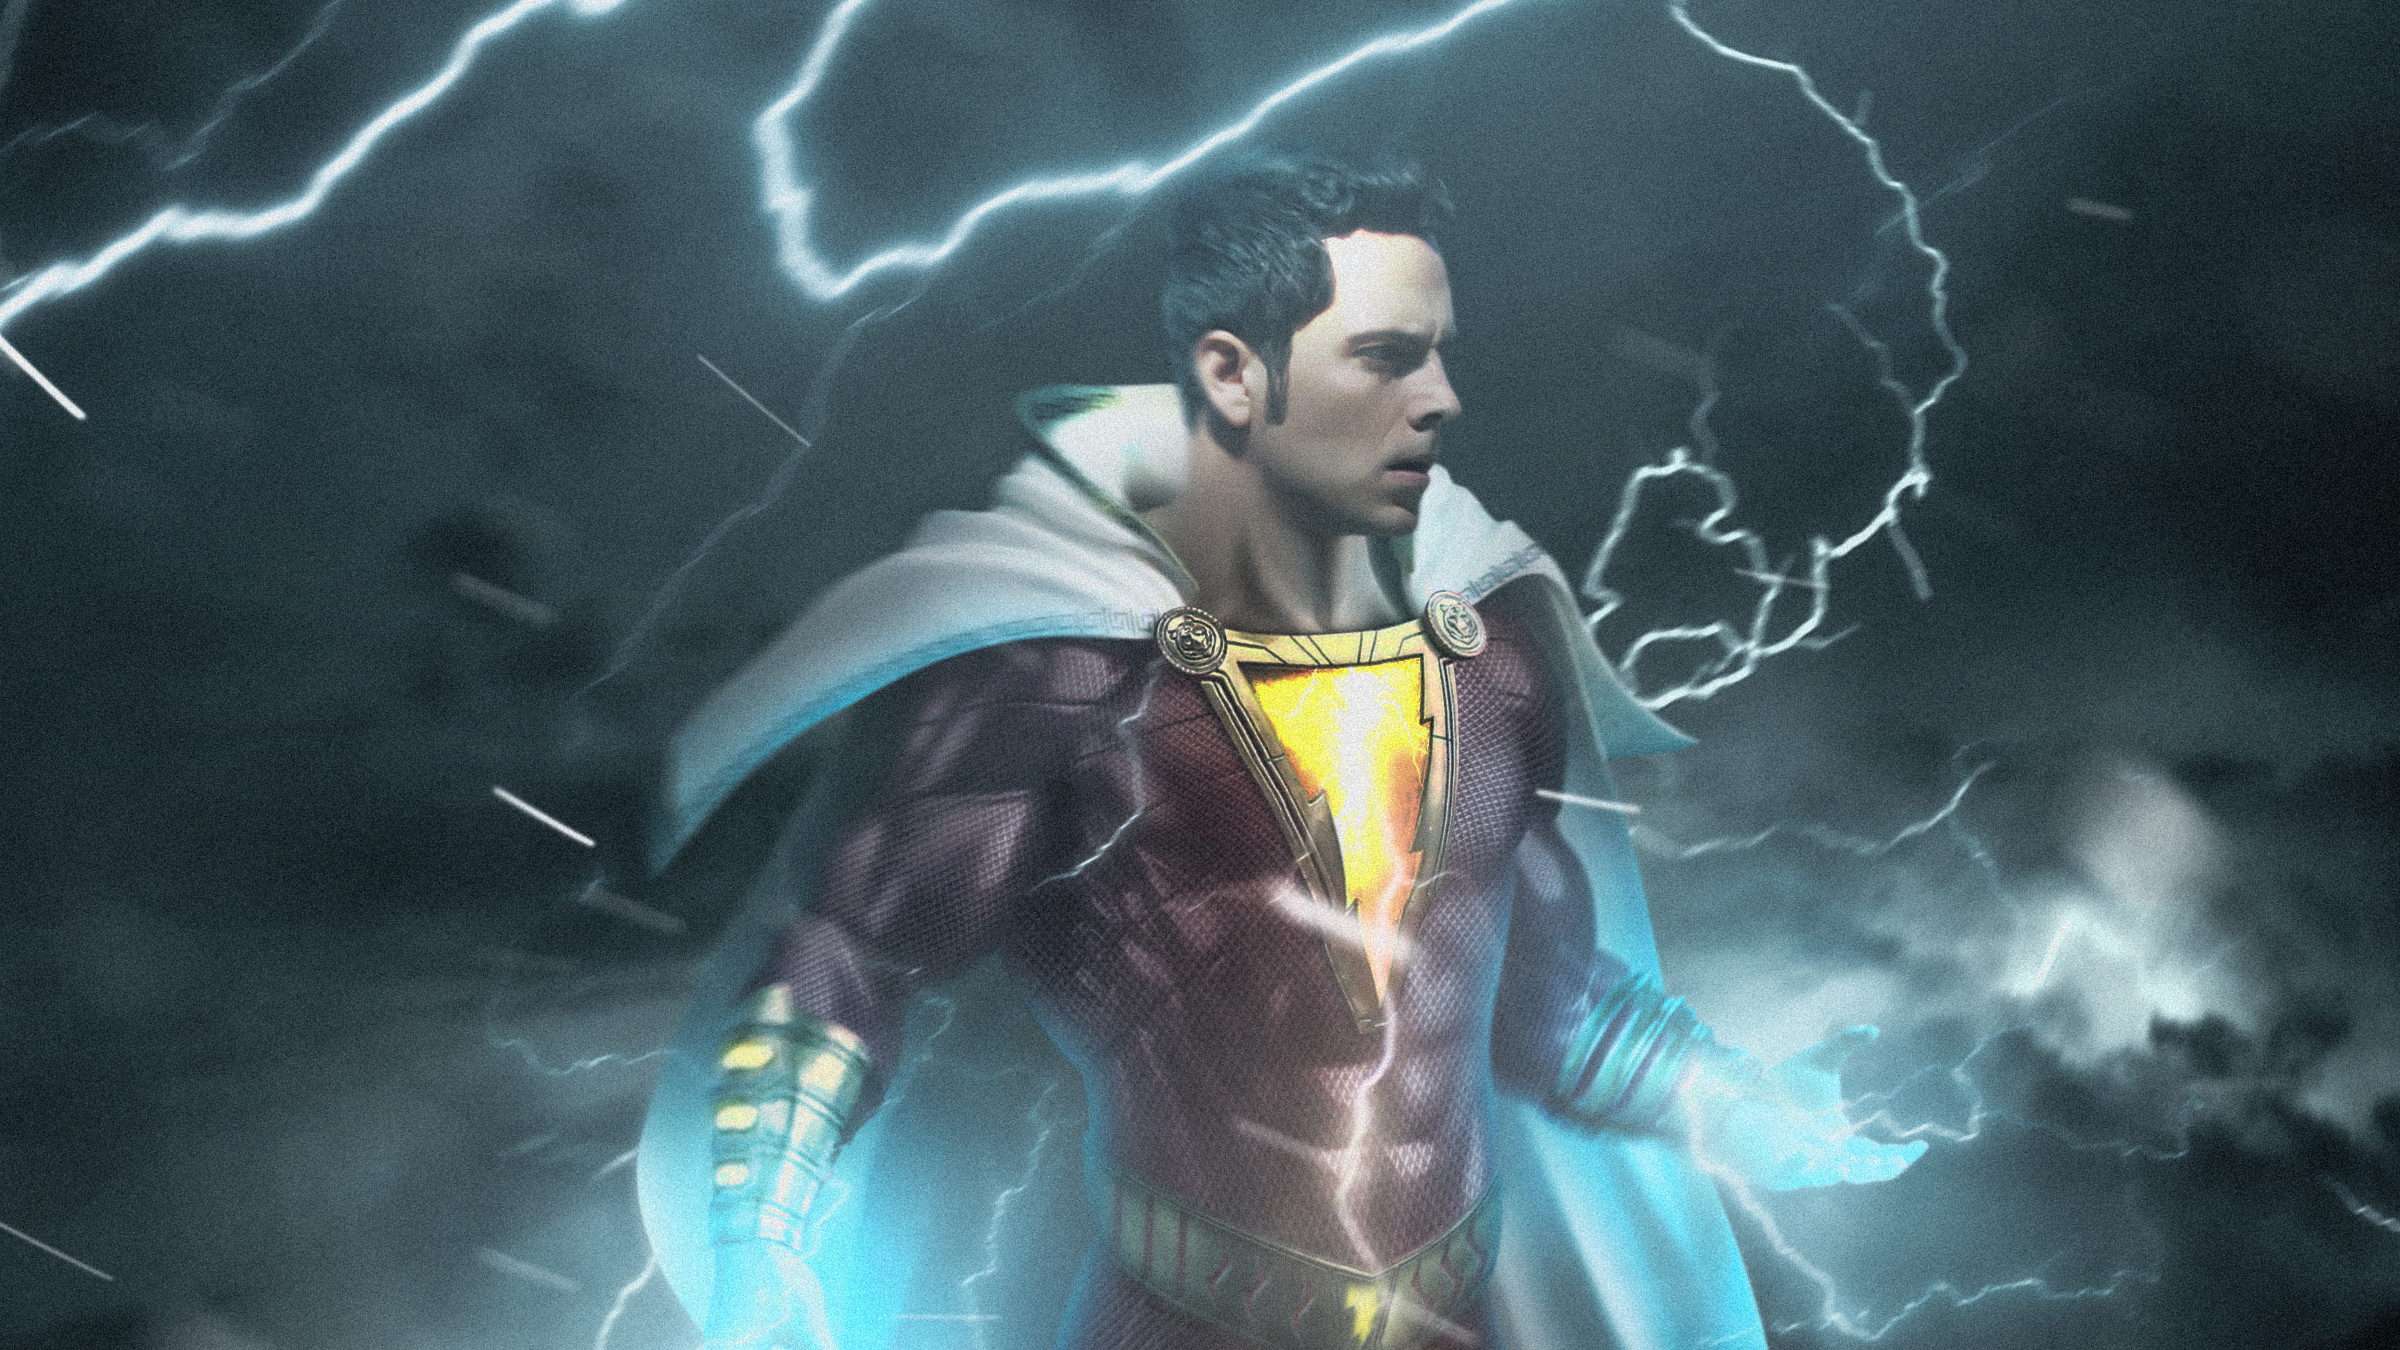 shazam 4k 1547506463 - Shazam 4k - superheroes wallpapers, shazam wallpapers, hd-wallpapers, digital art wallpapers, behance wallpapers, artwork wallpapers, artist wallpapers, 4k-wallpapers